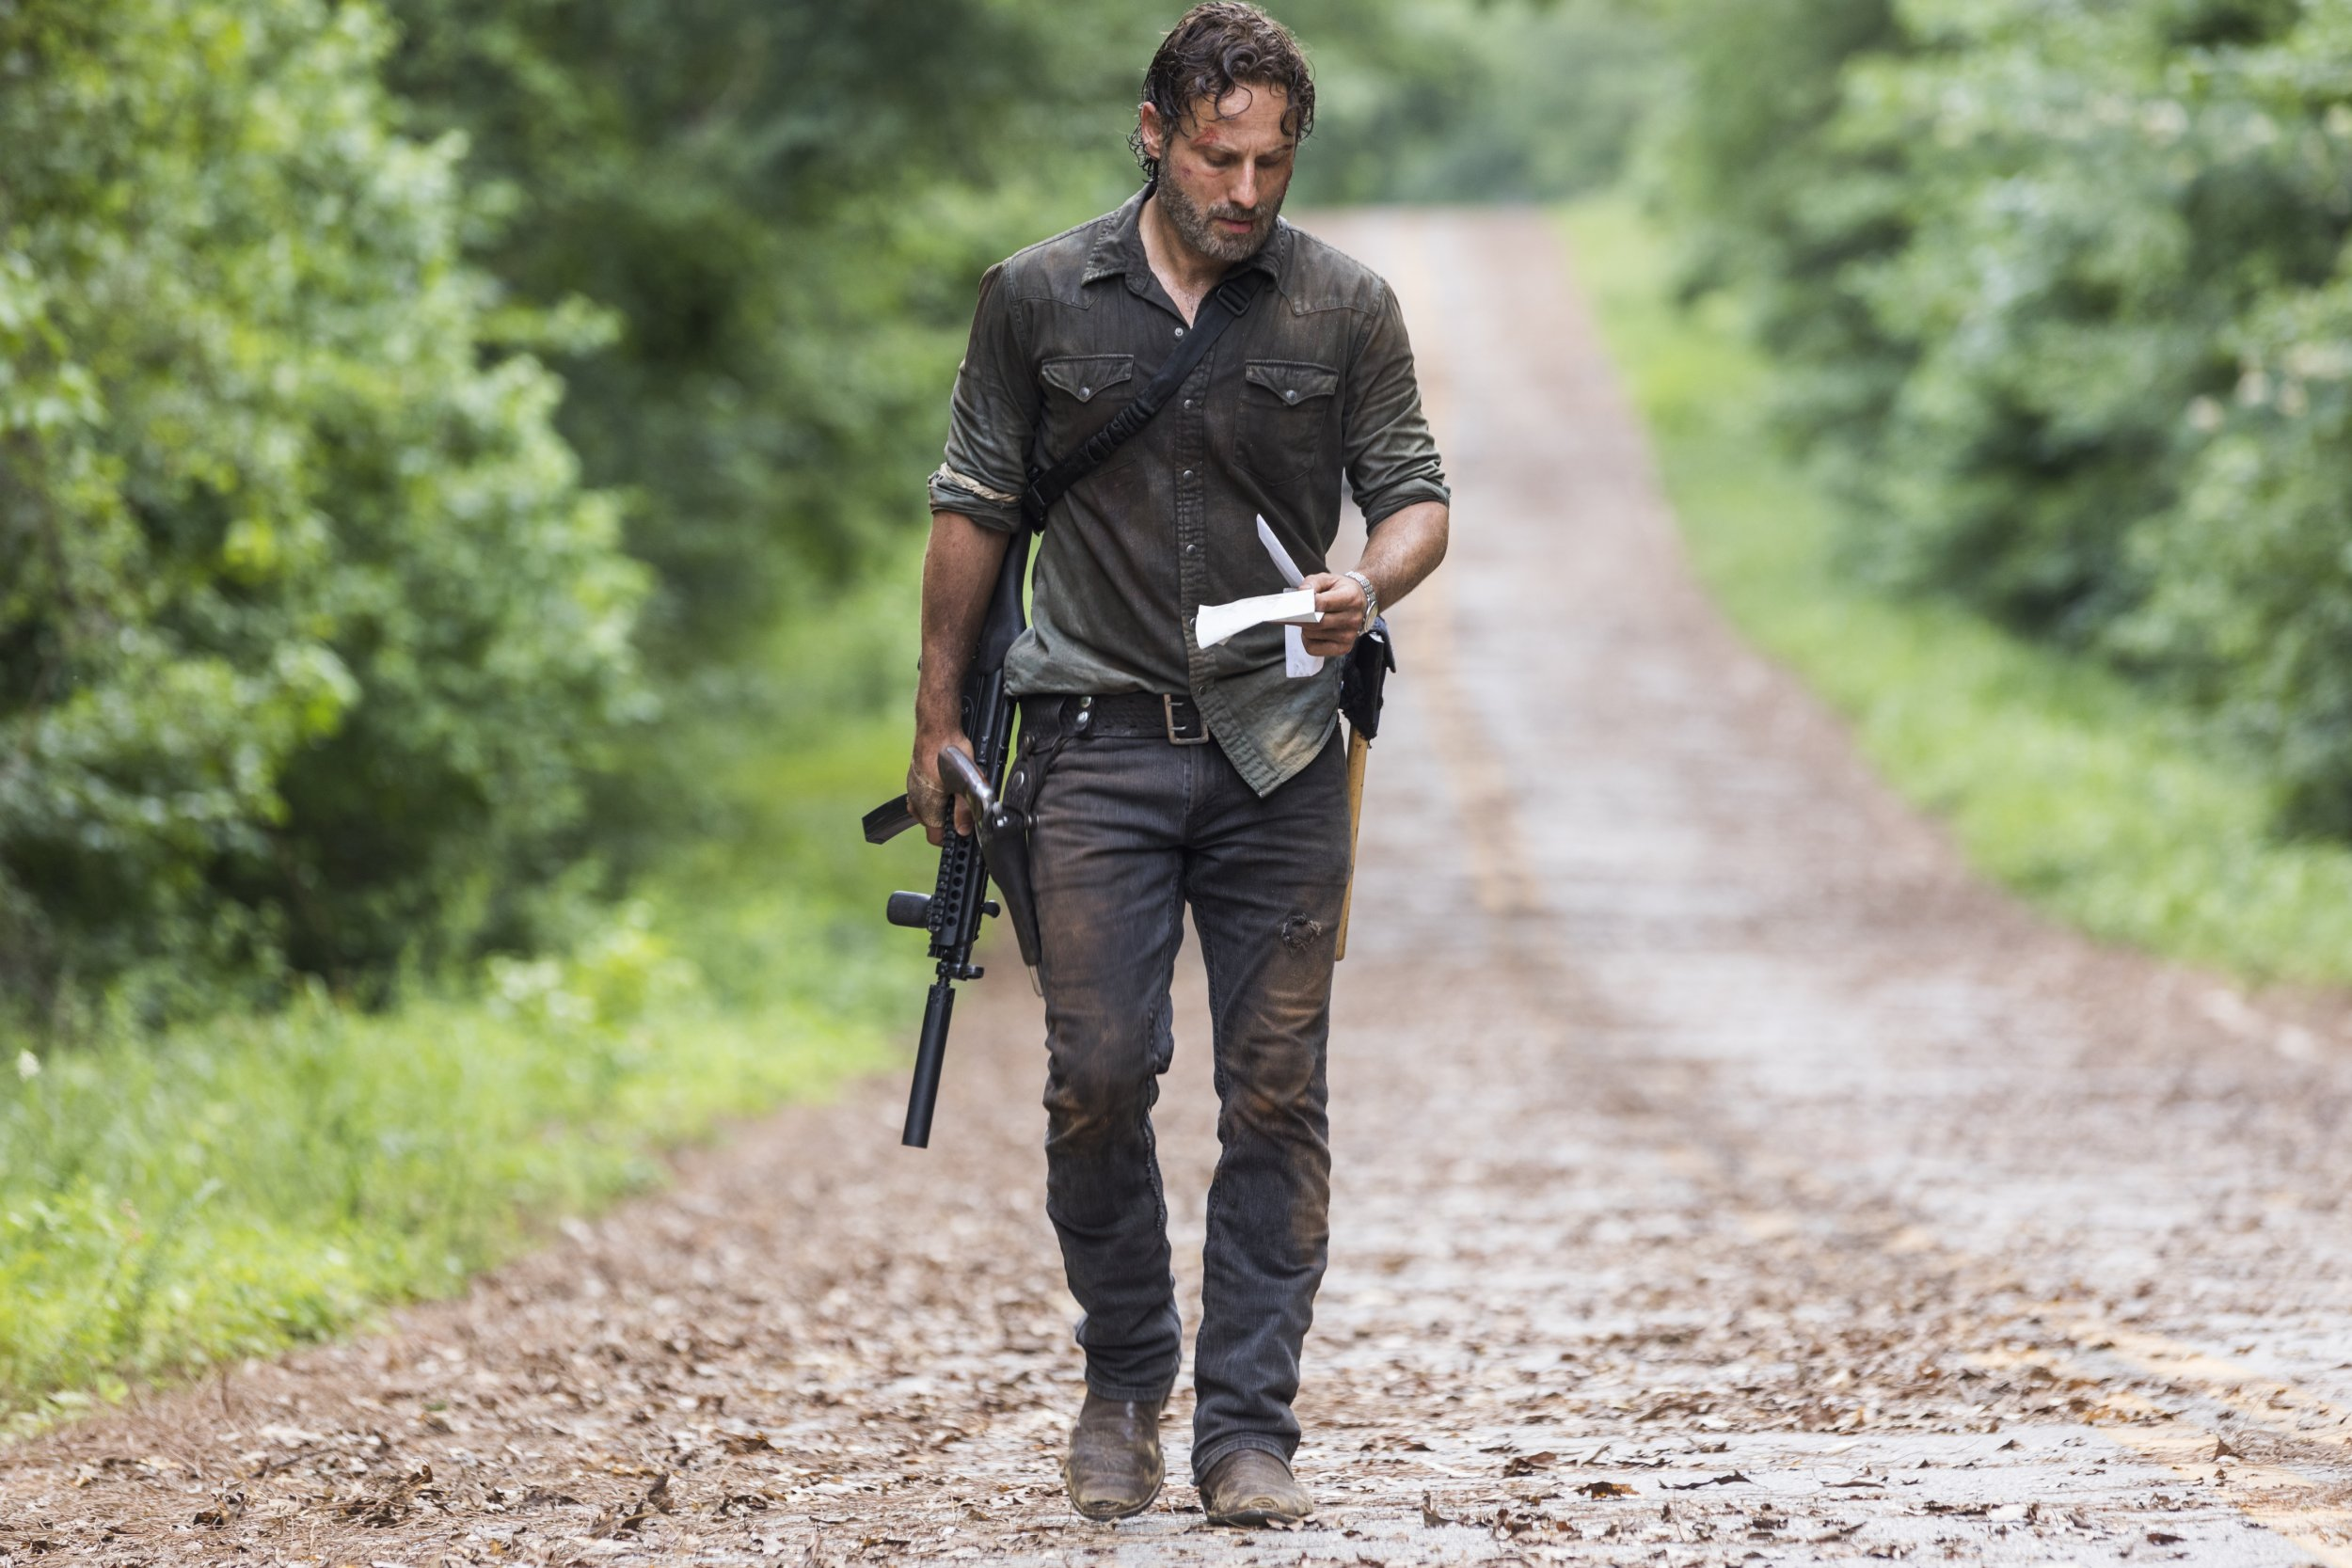 The Walking Dead Season 9 Episodes List Titles May Tease When Rick Leaves